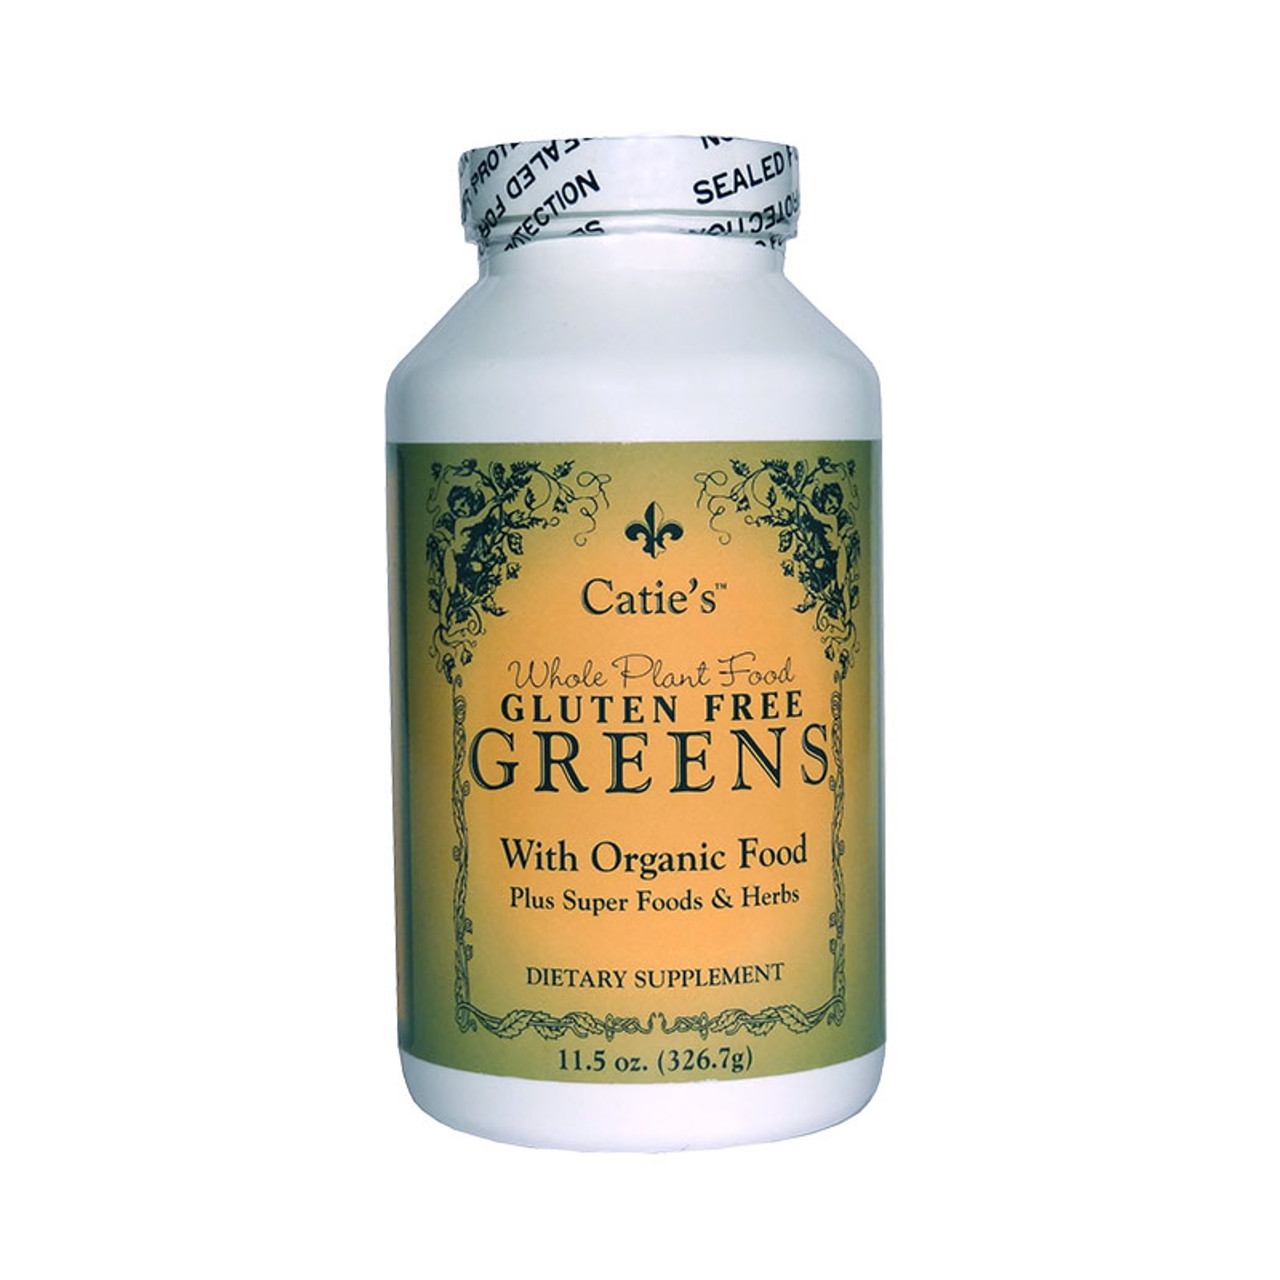 Front view of a bottle of Catie's Organic Gluten Free Greens .